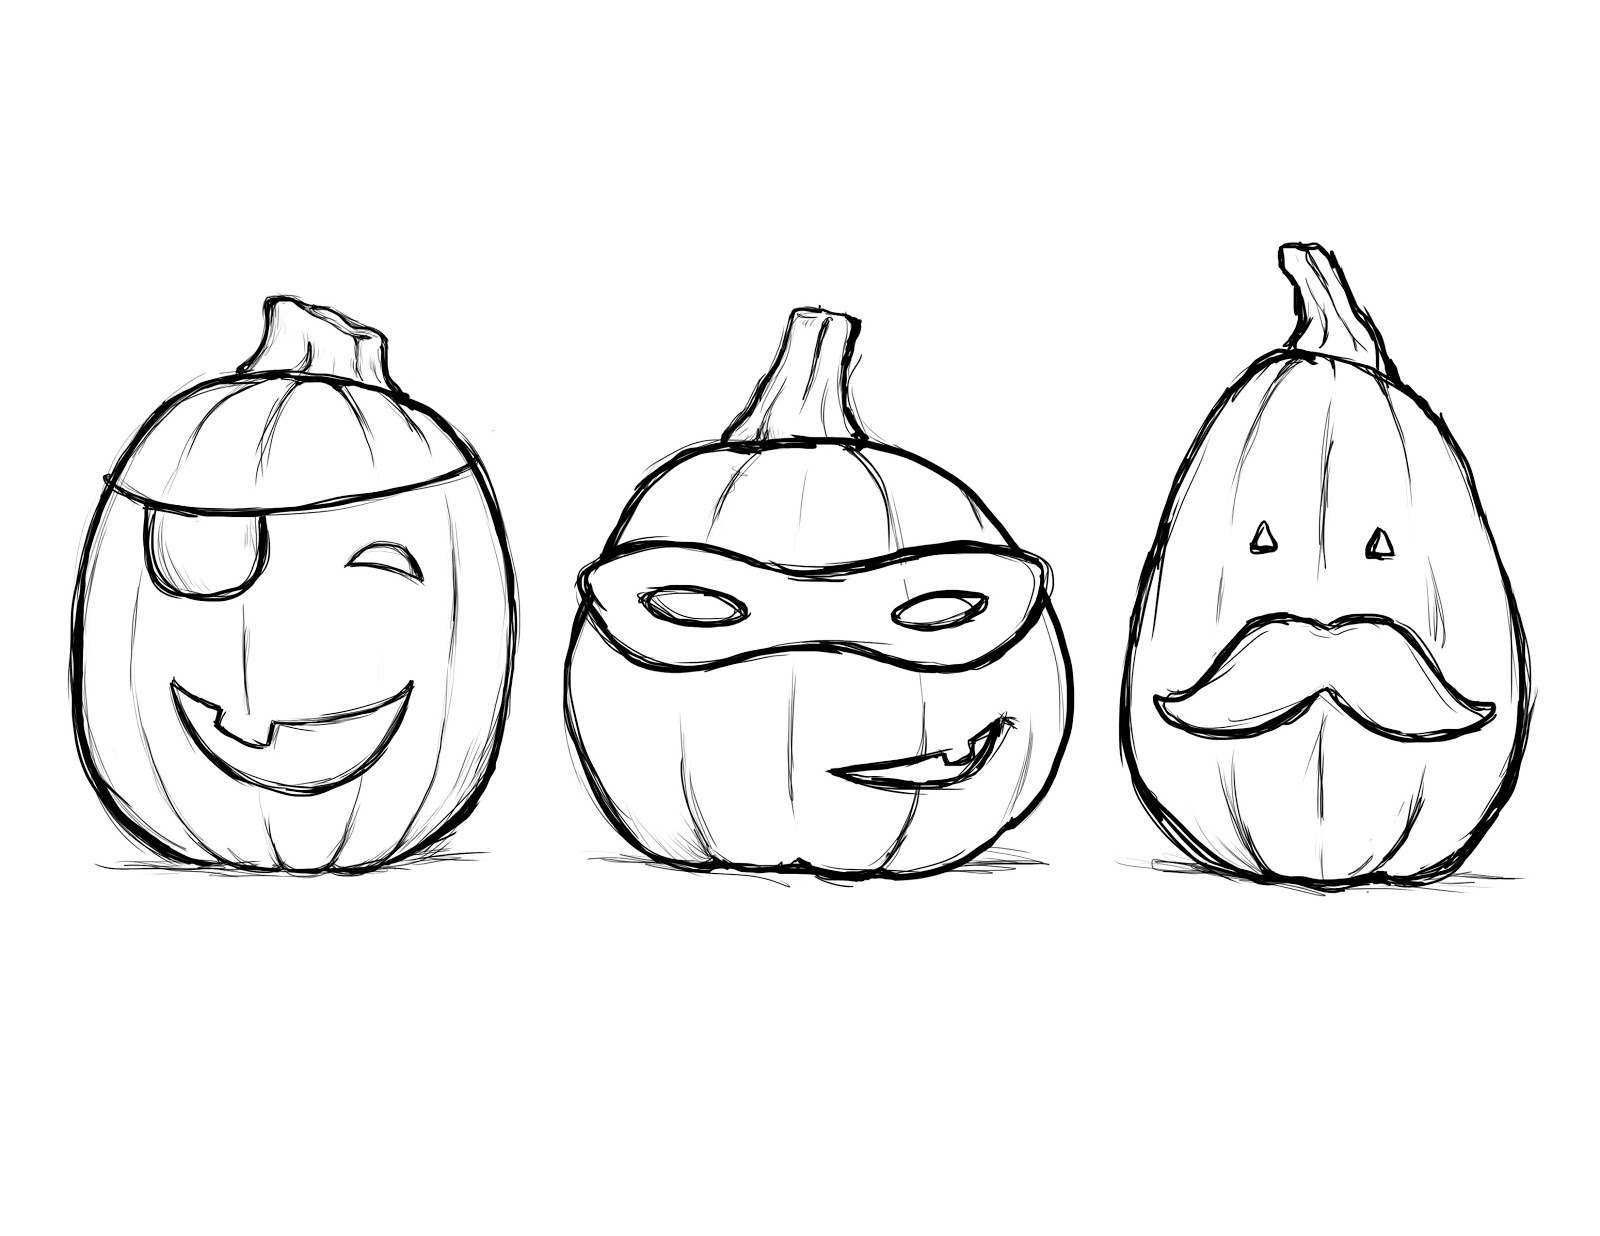 halloween pumpkin pictures to print and color free printable pumpkin coloring pages for kids halloween color and pumpkin pictures print to